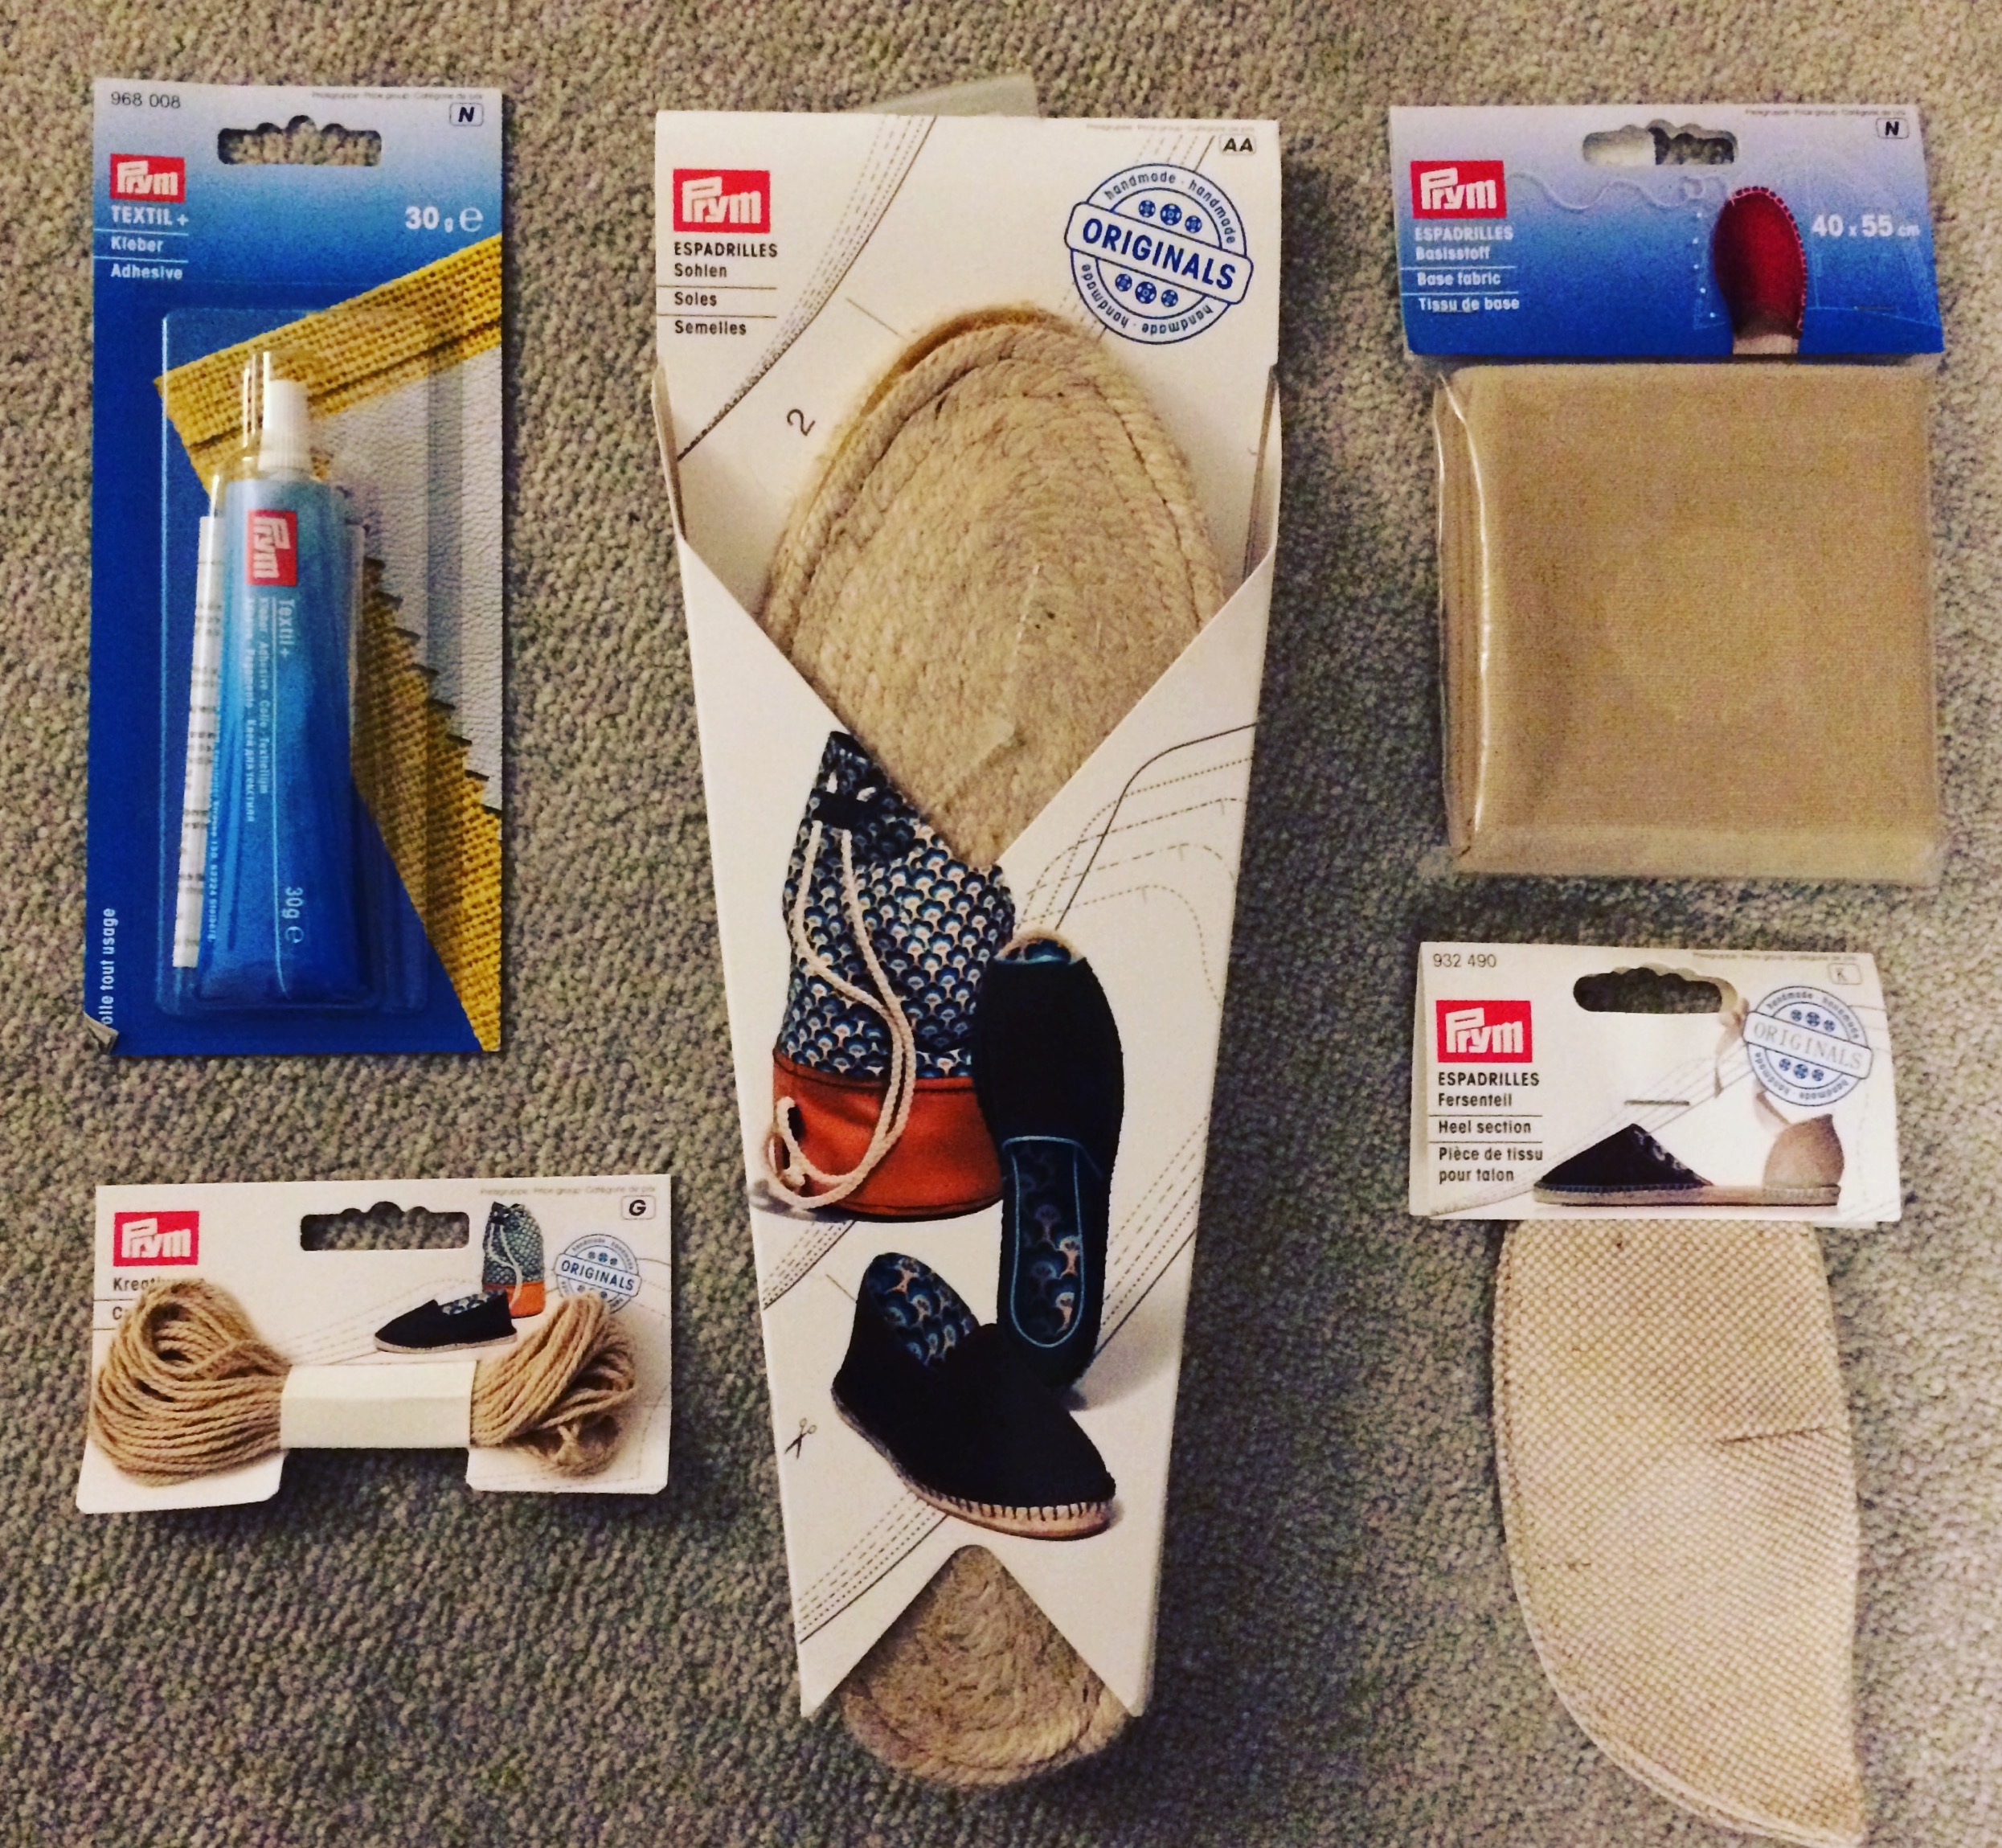 Image of fabric glue, espadrille soles, base cloth, heel sections and beige yarn for sewing together